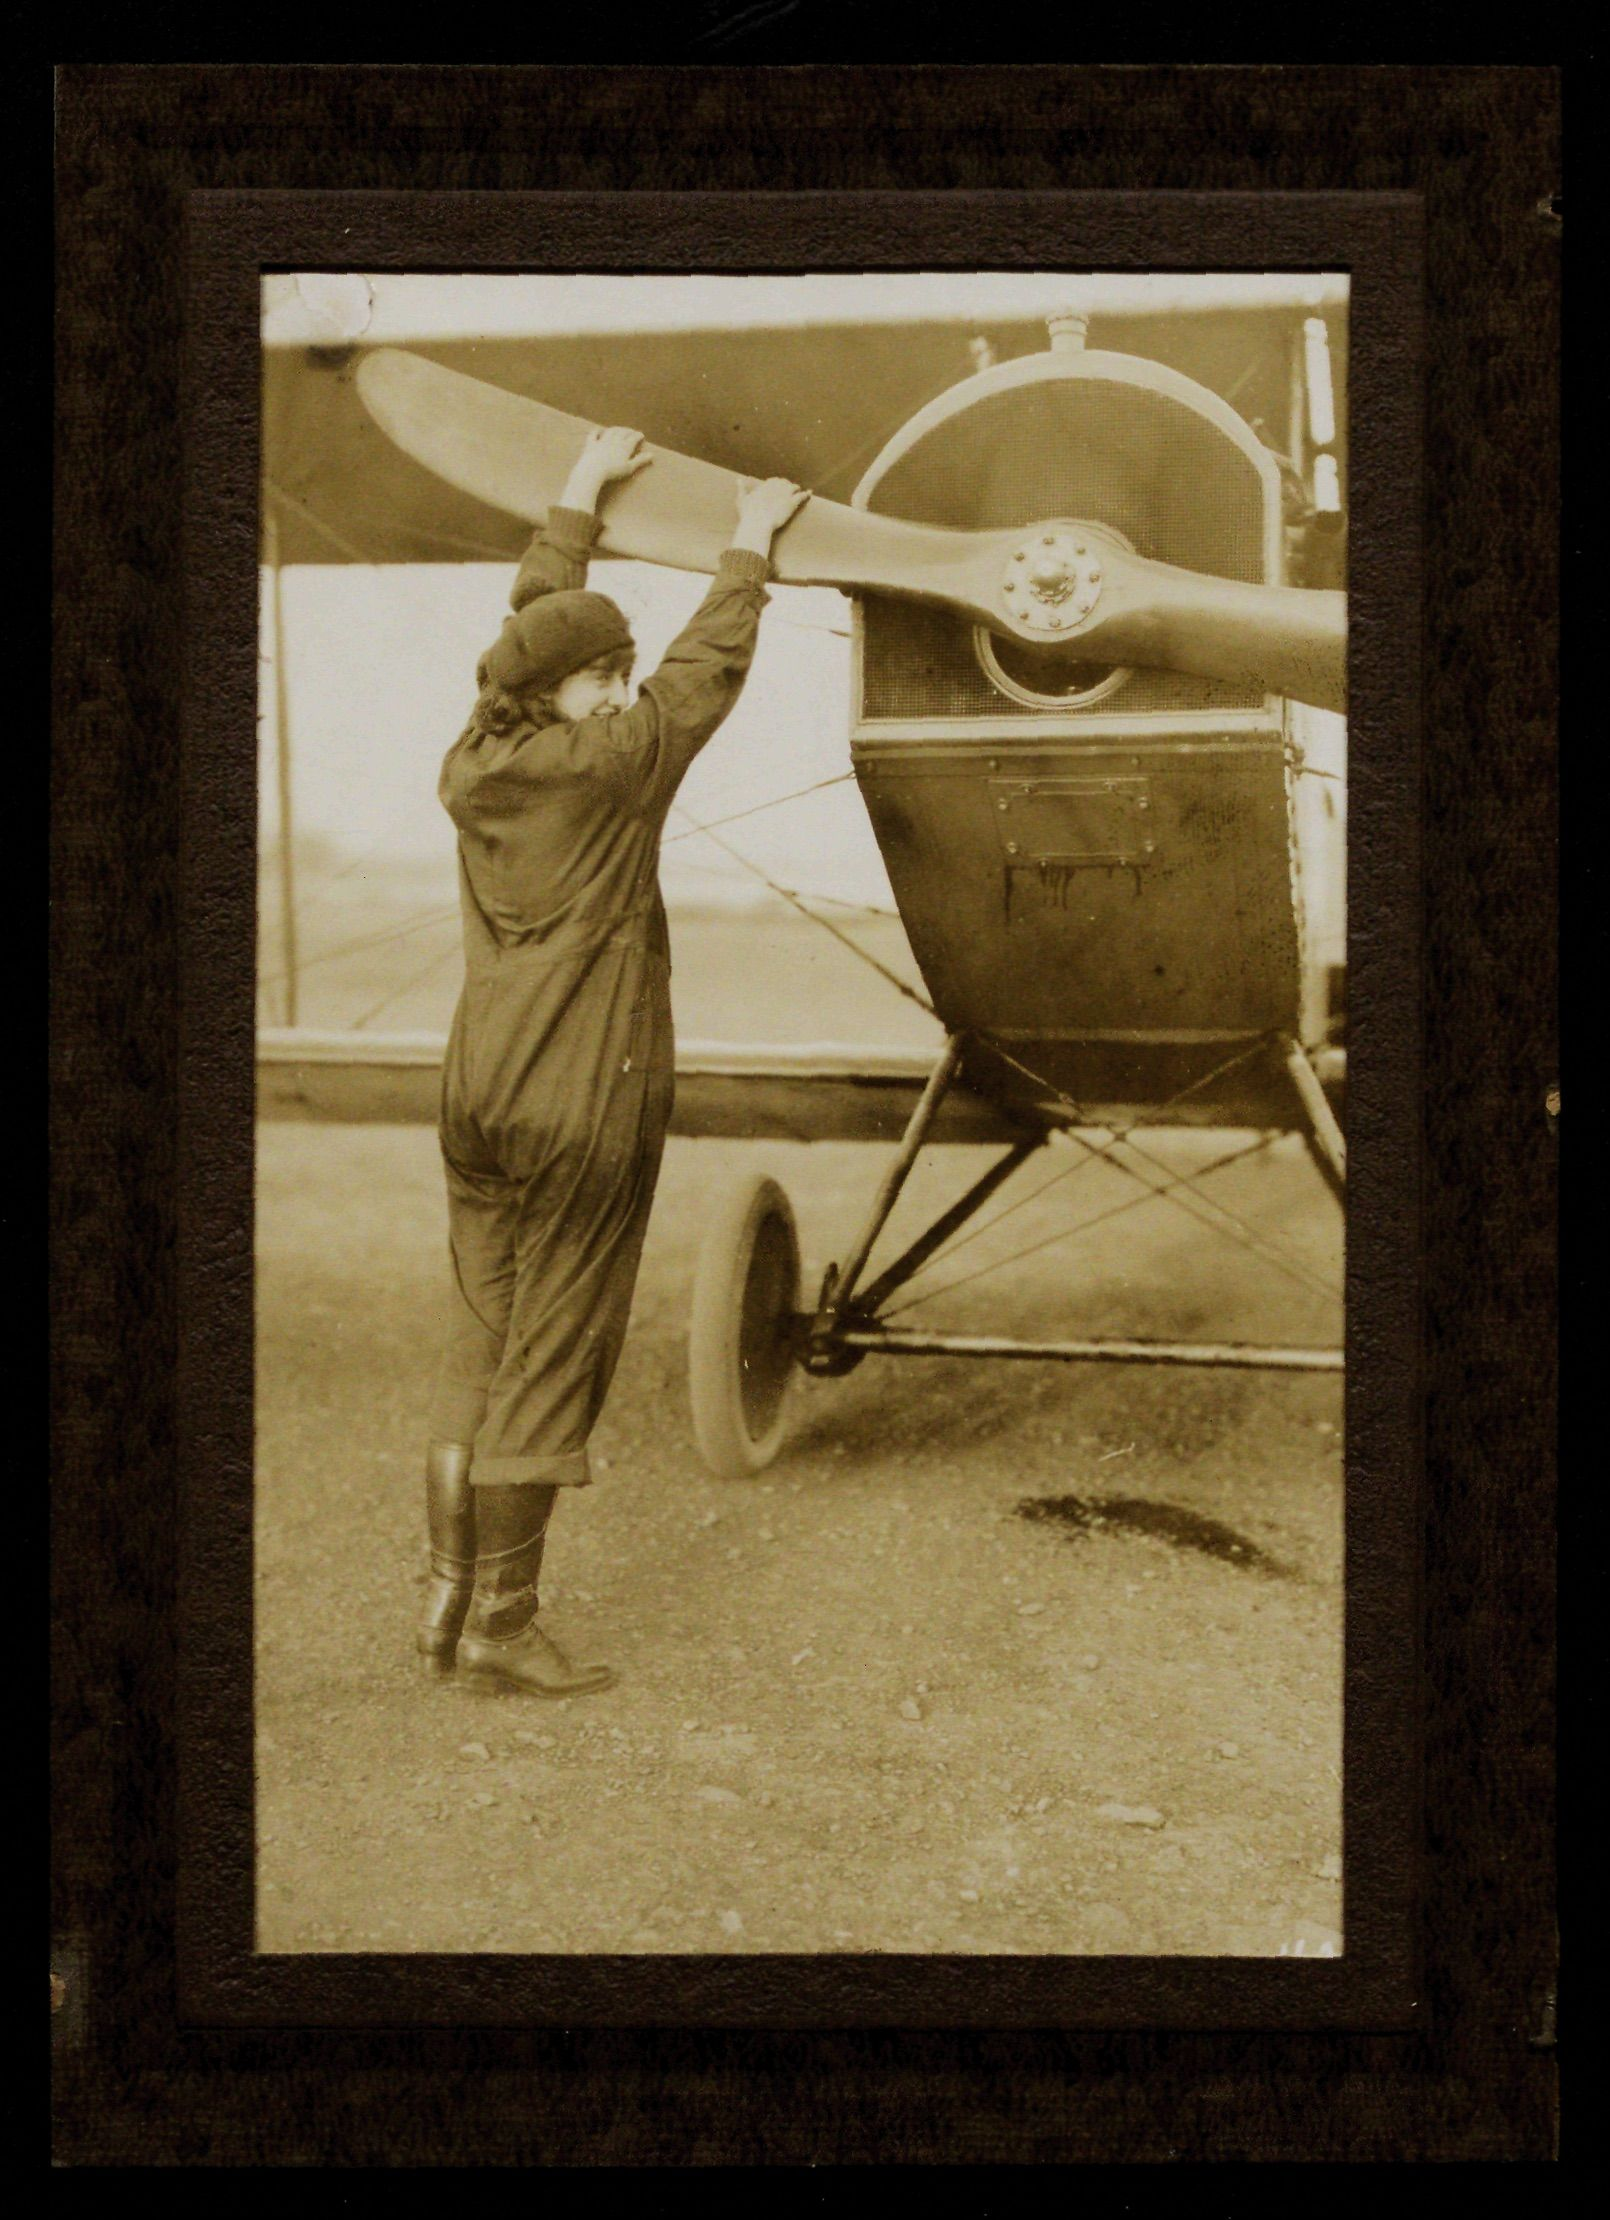 An archival image of Neta Snook, Amelia Earhart's flight instructor, adjusting a plane's propeller in 1920.